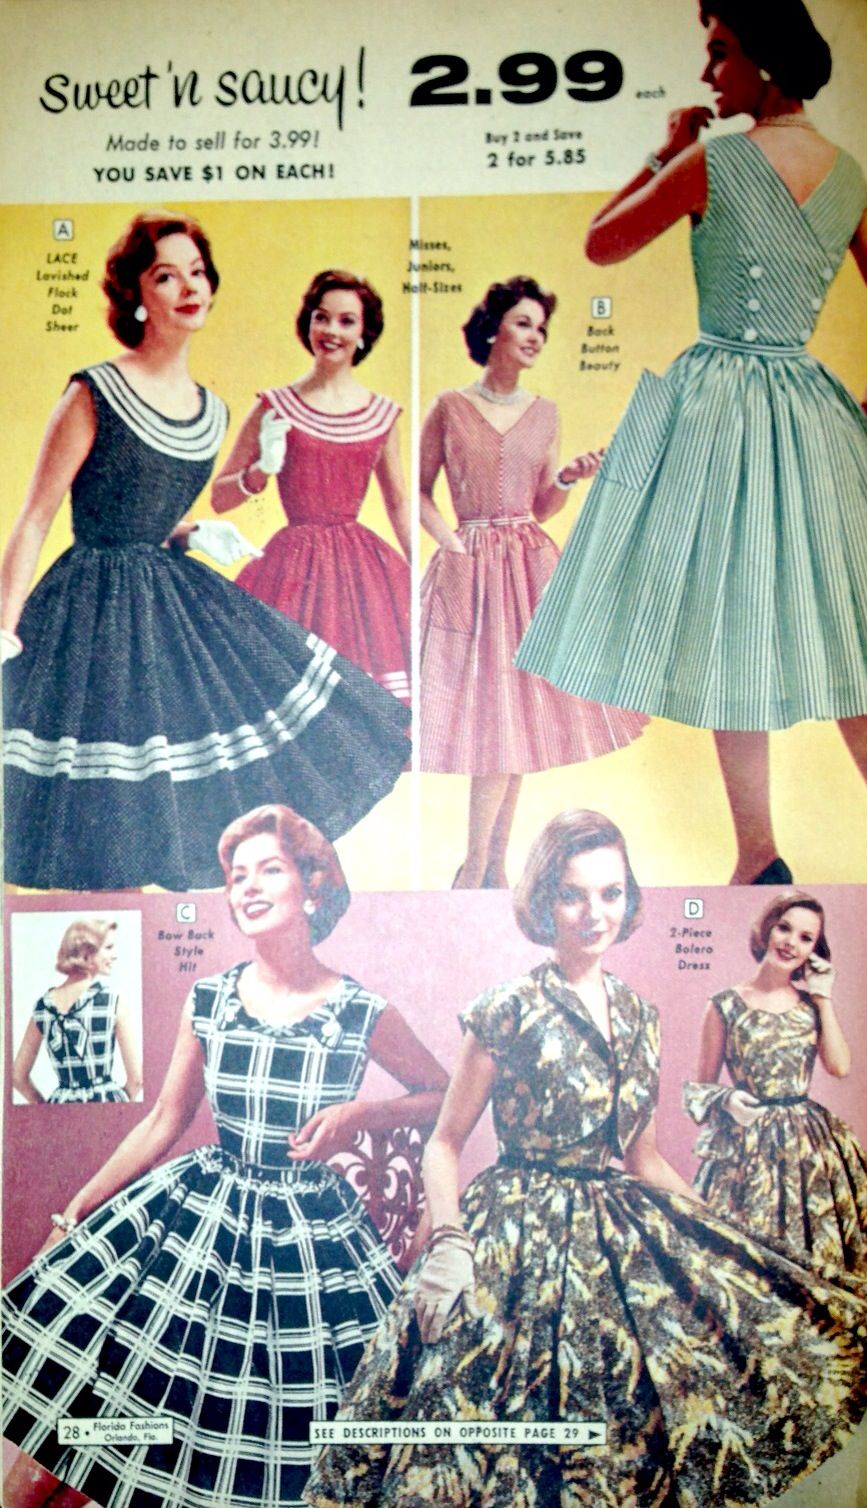 1950s Florida Fashions Catalog Pages Vintage Dresses 50s Vintage Style Dresses 1950 Fashion